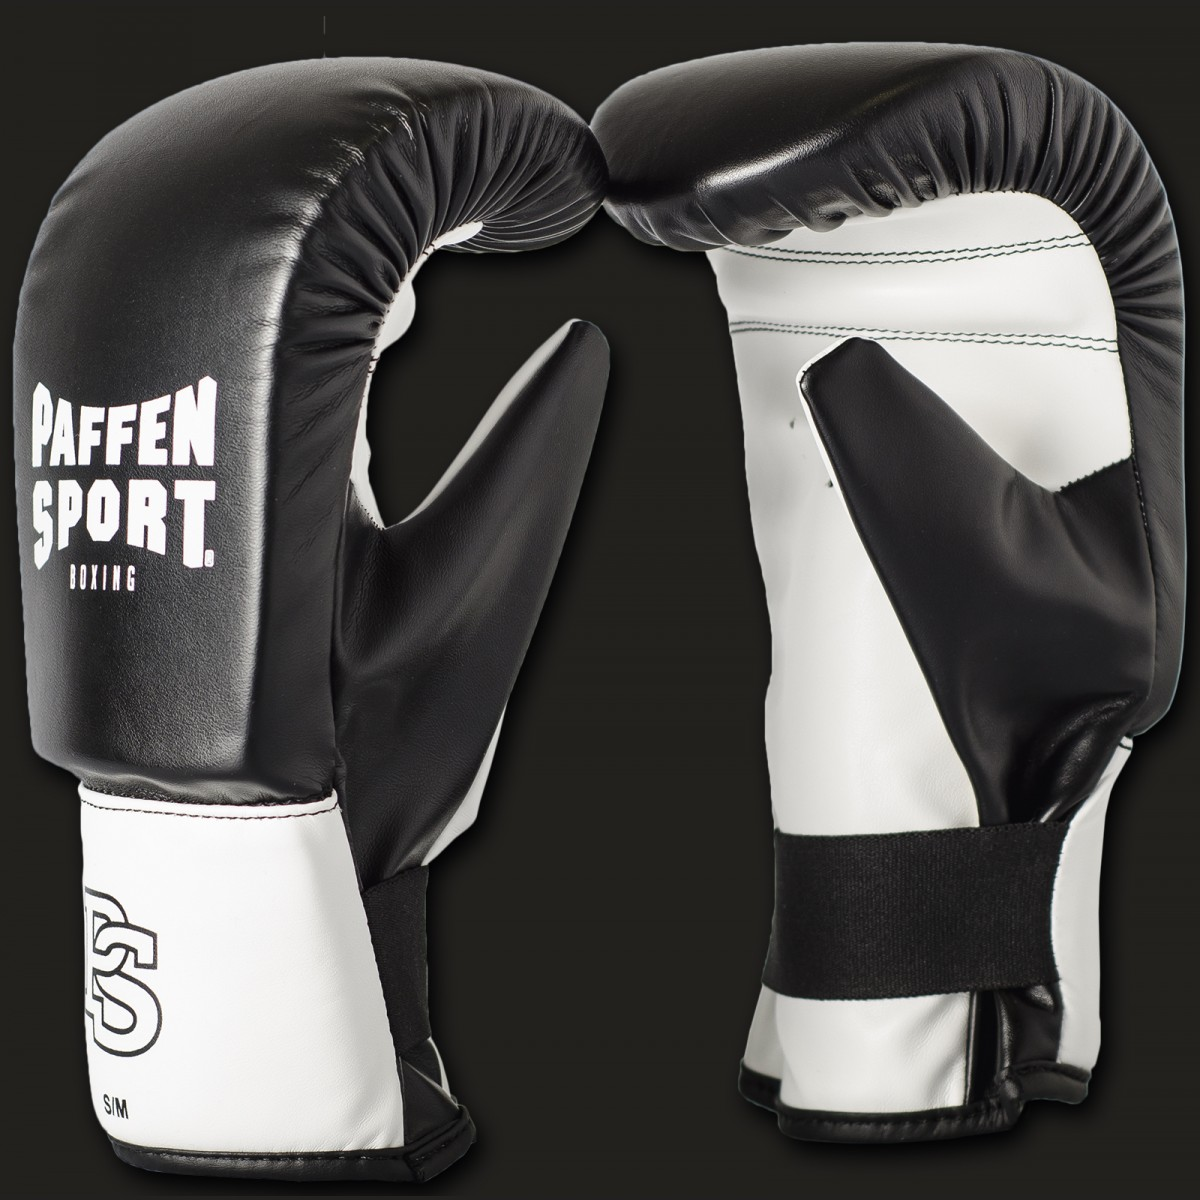 Paffen Sport Gloves Review: FIT Bag Gloves